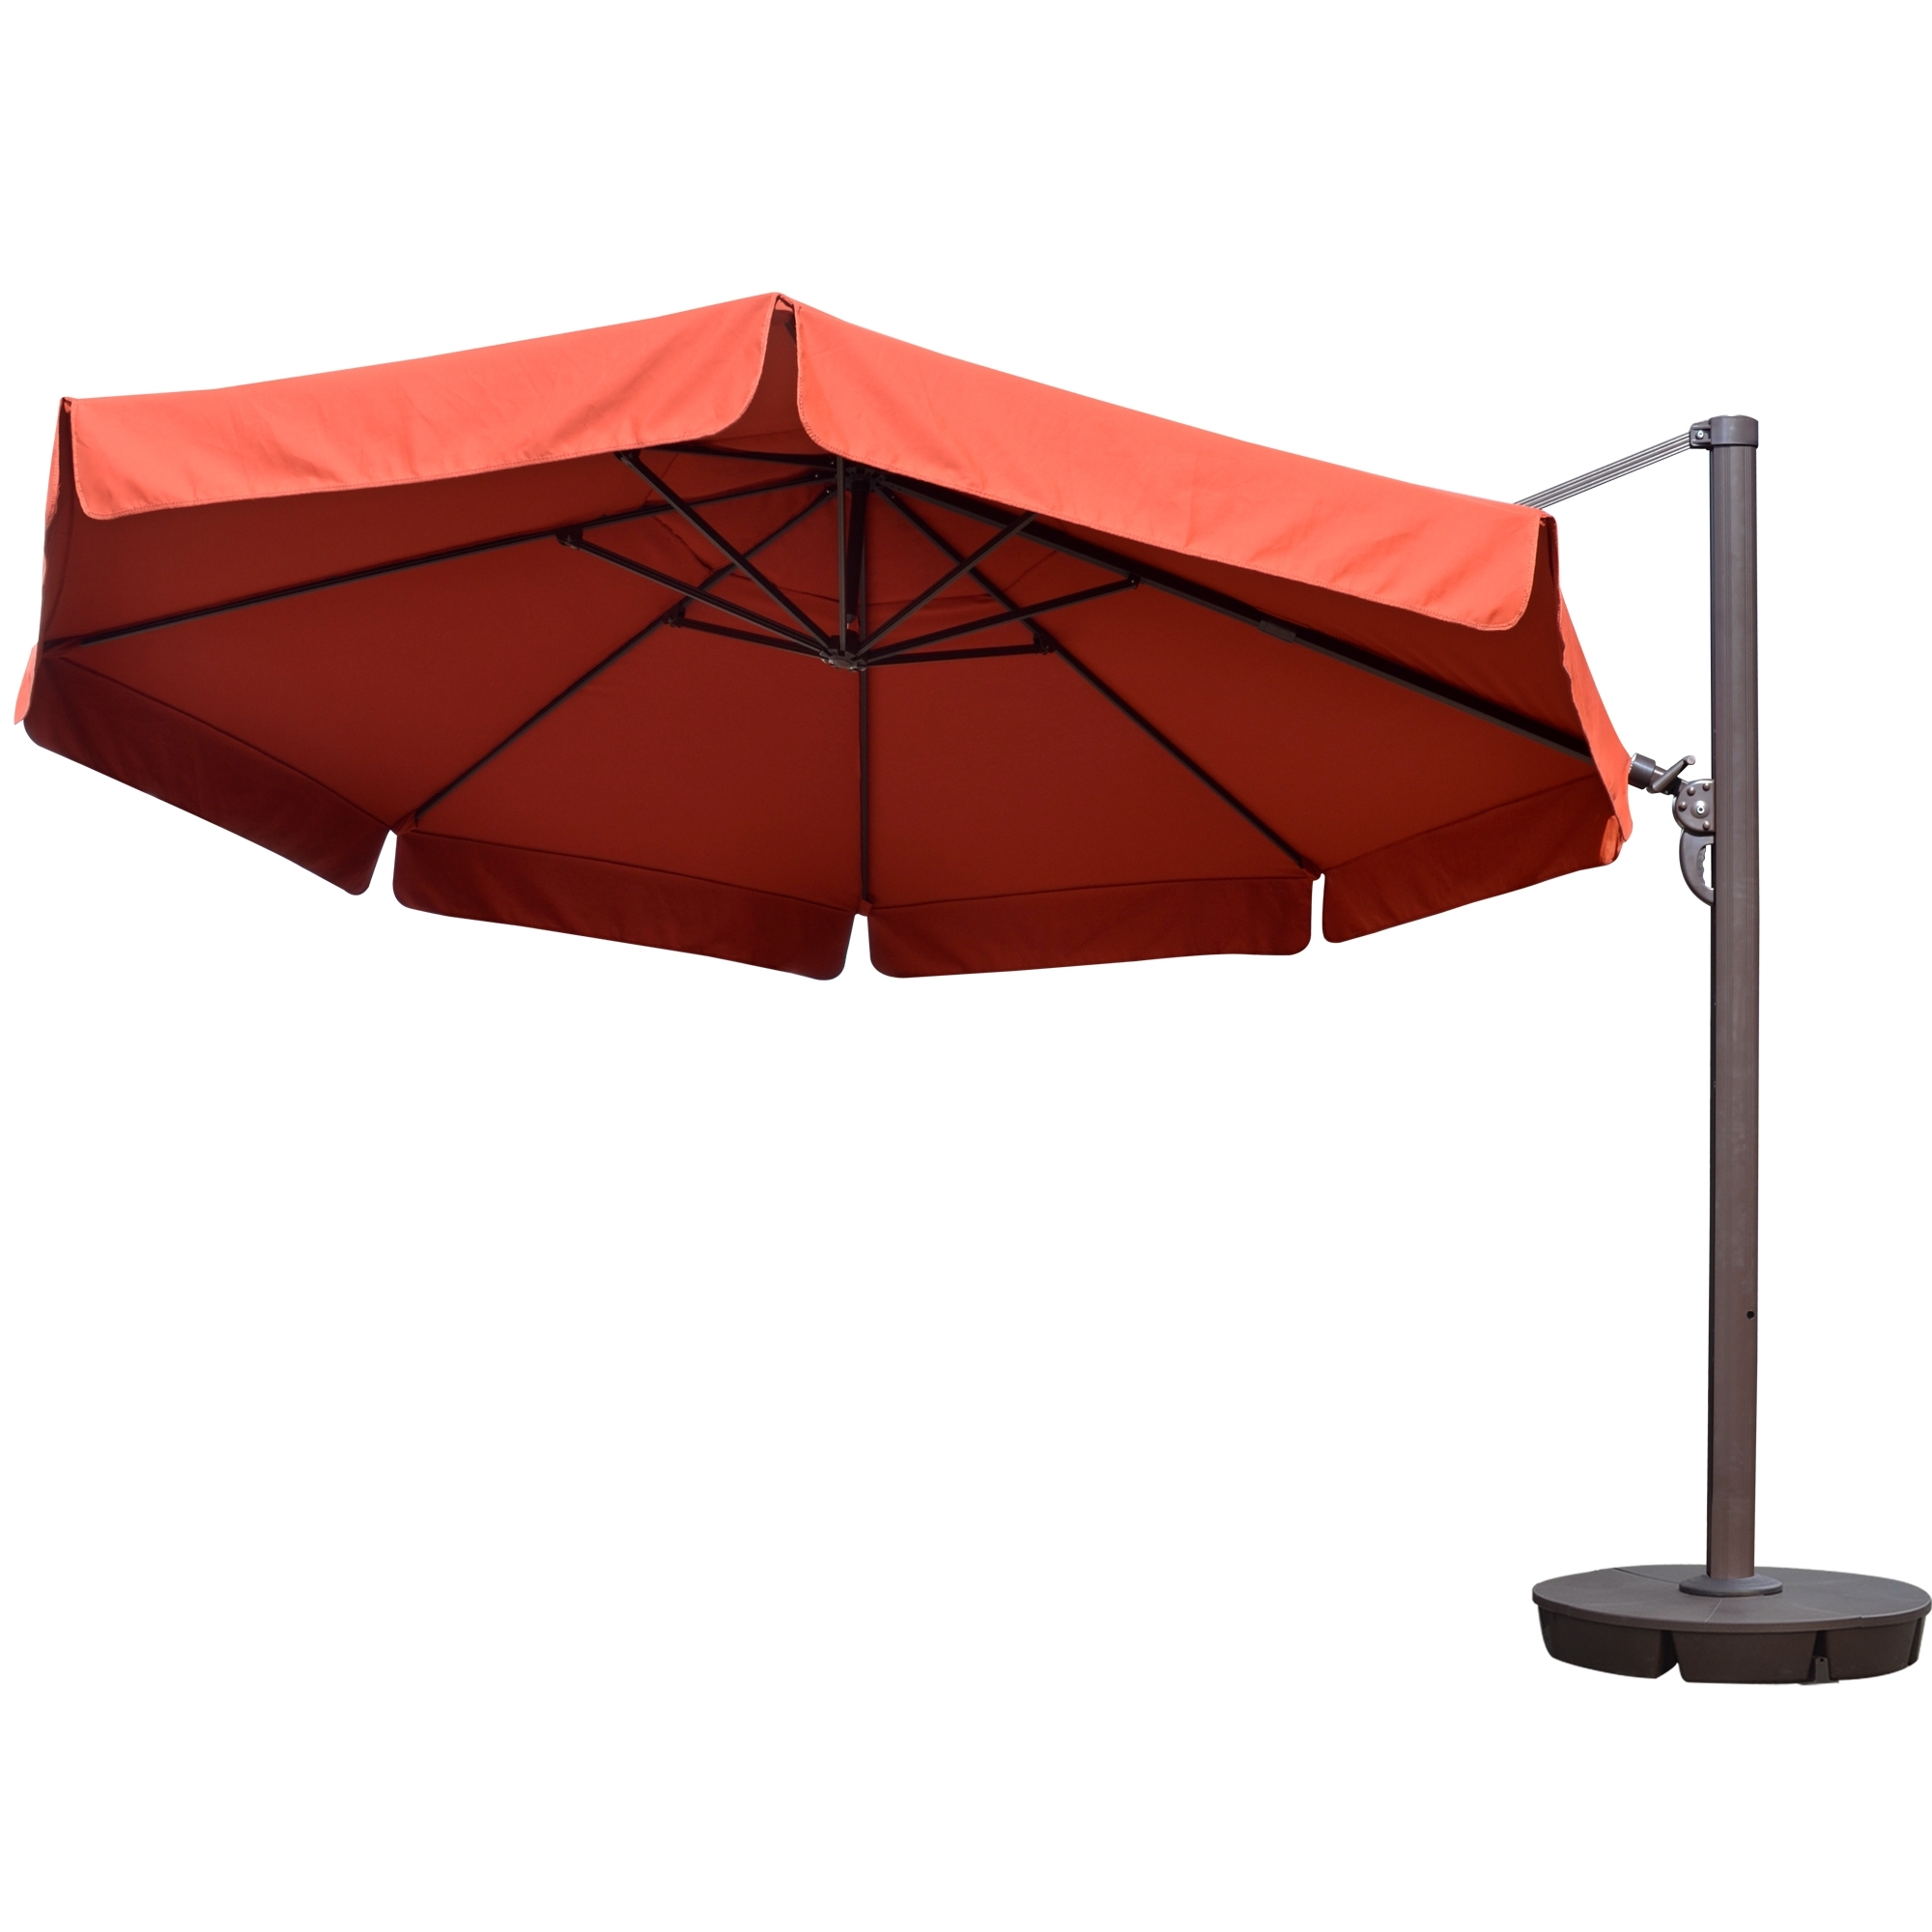 Patio Umbrellas With Valance In Well Known Island Umbrella Victoria 13 Ft Octagonal Cantilever W/ Valance Patio (View 10 of 20)